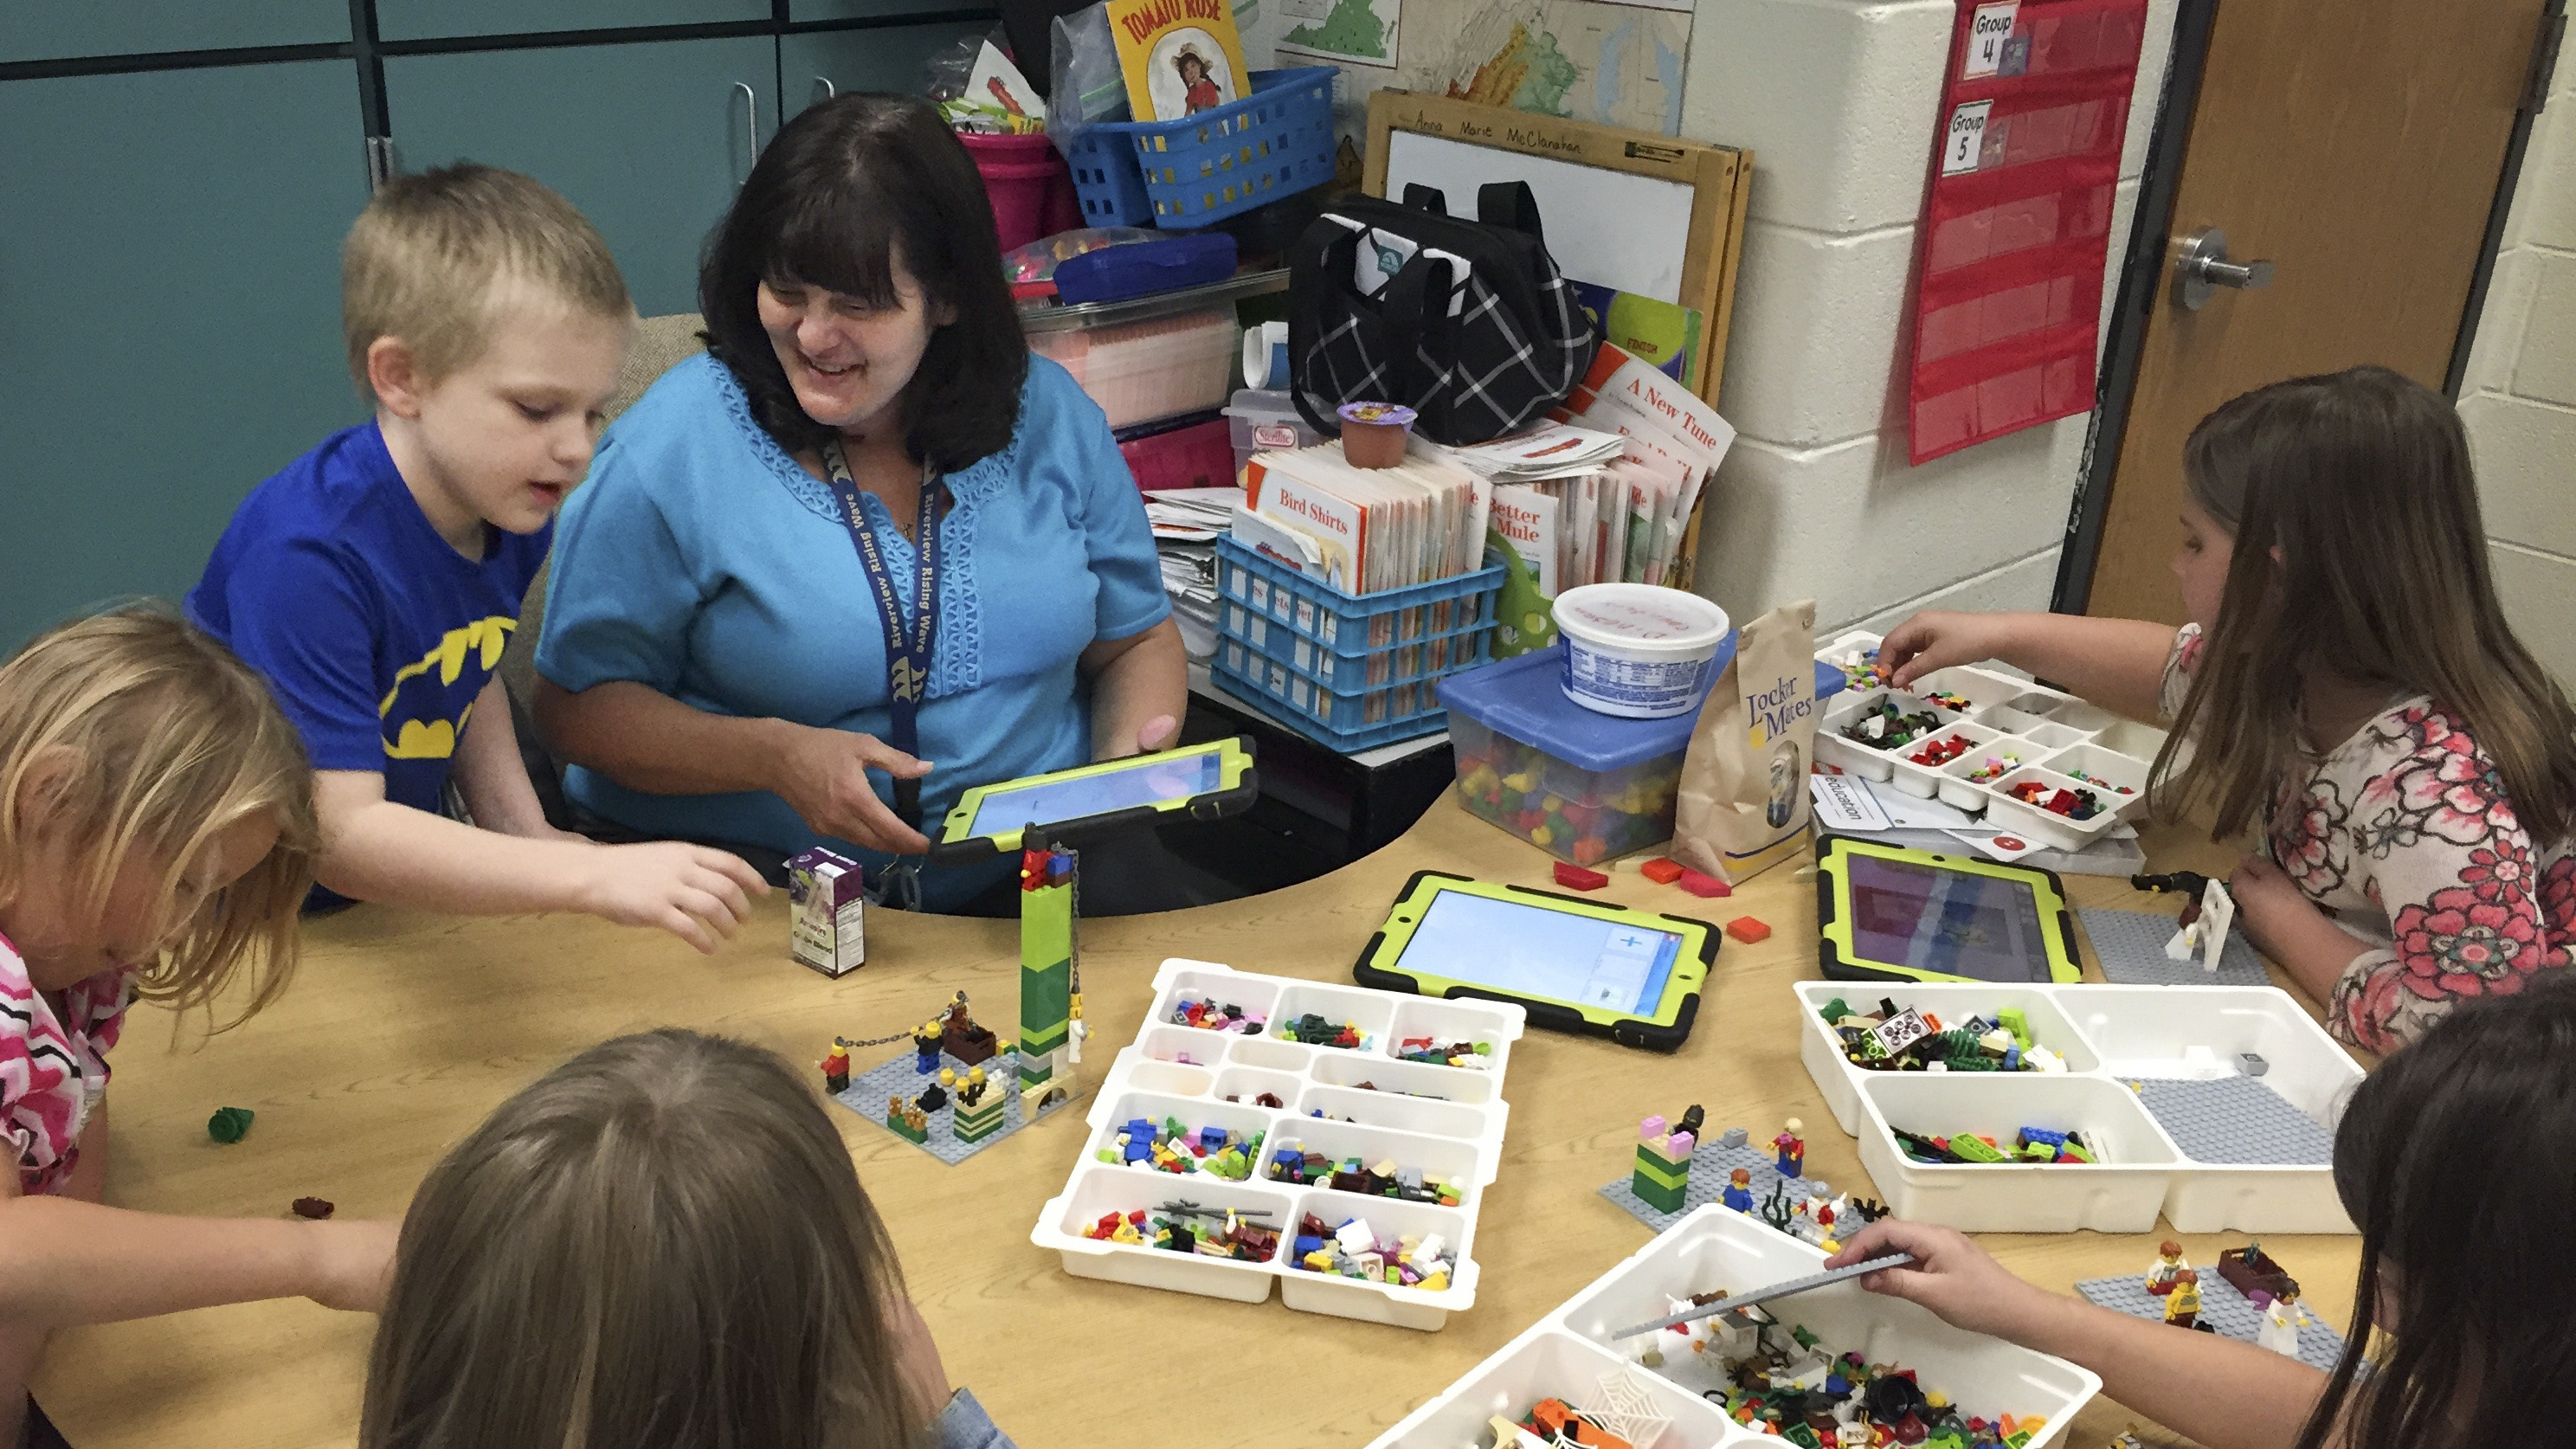 Anna Marie McClanahan (center) helps children write stories by using Legos to create scenes.